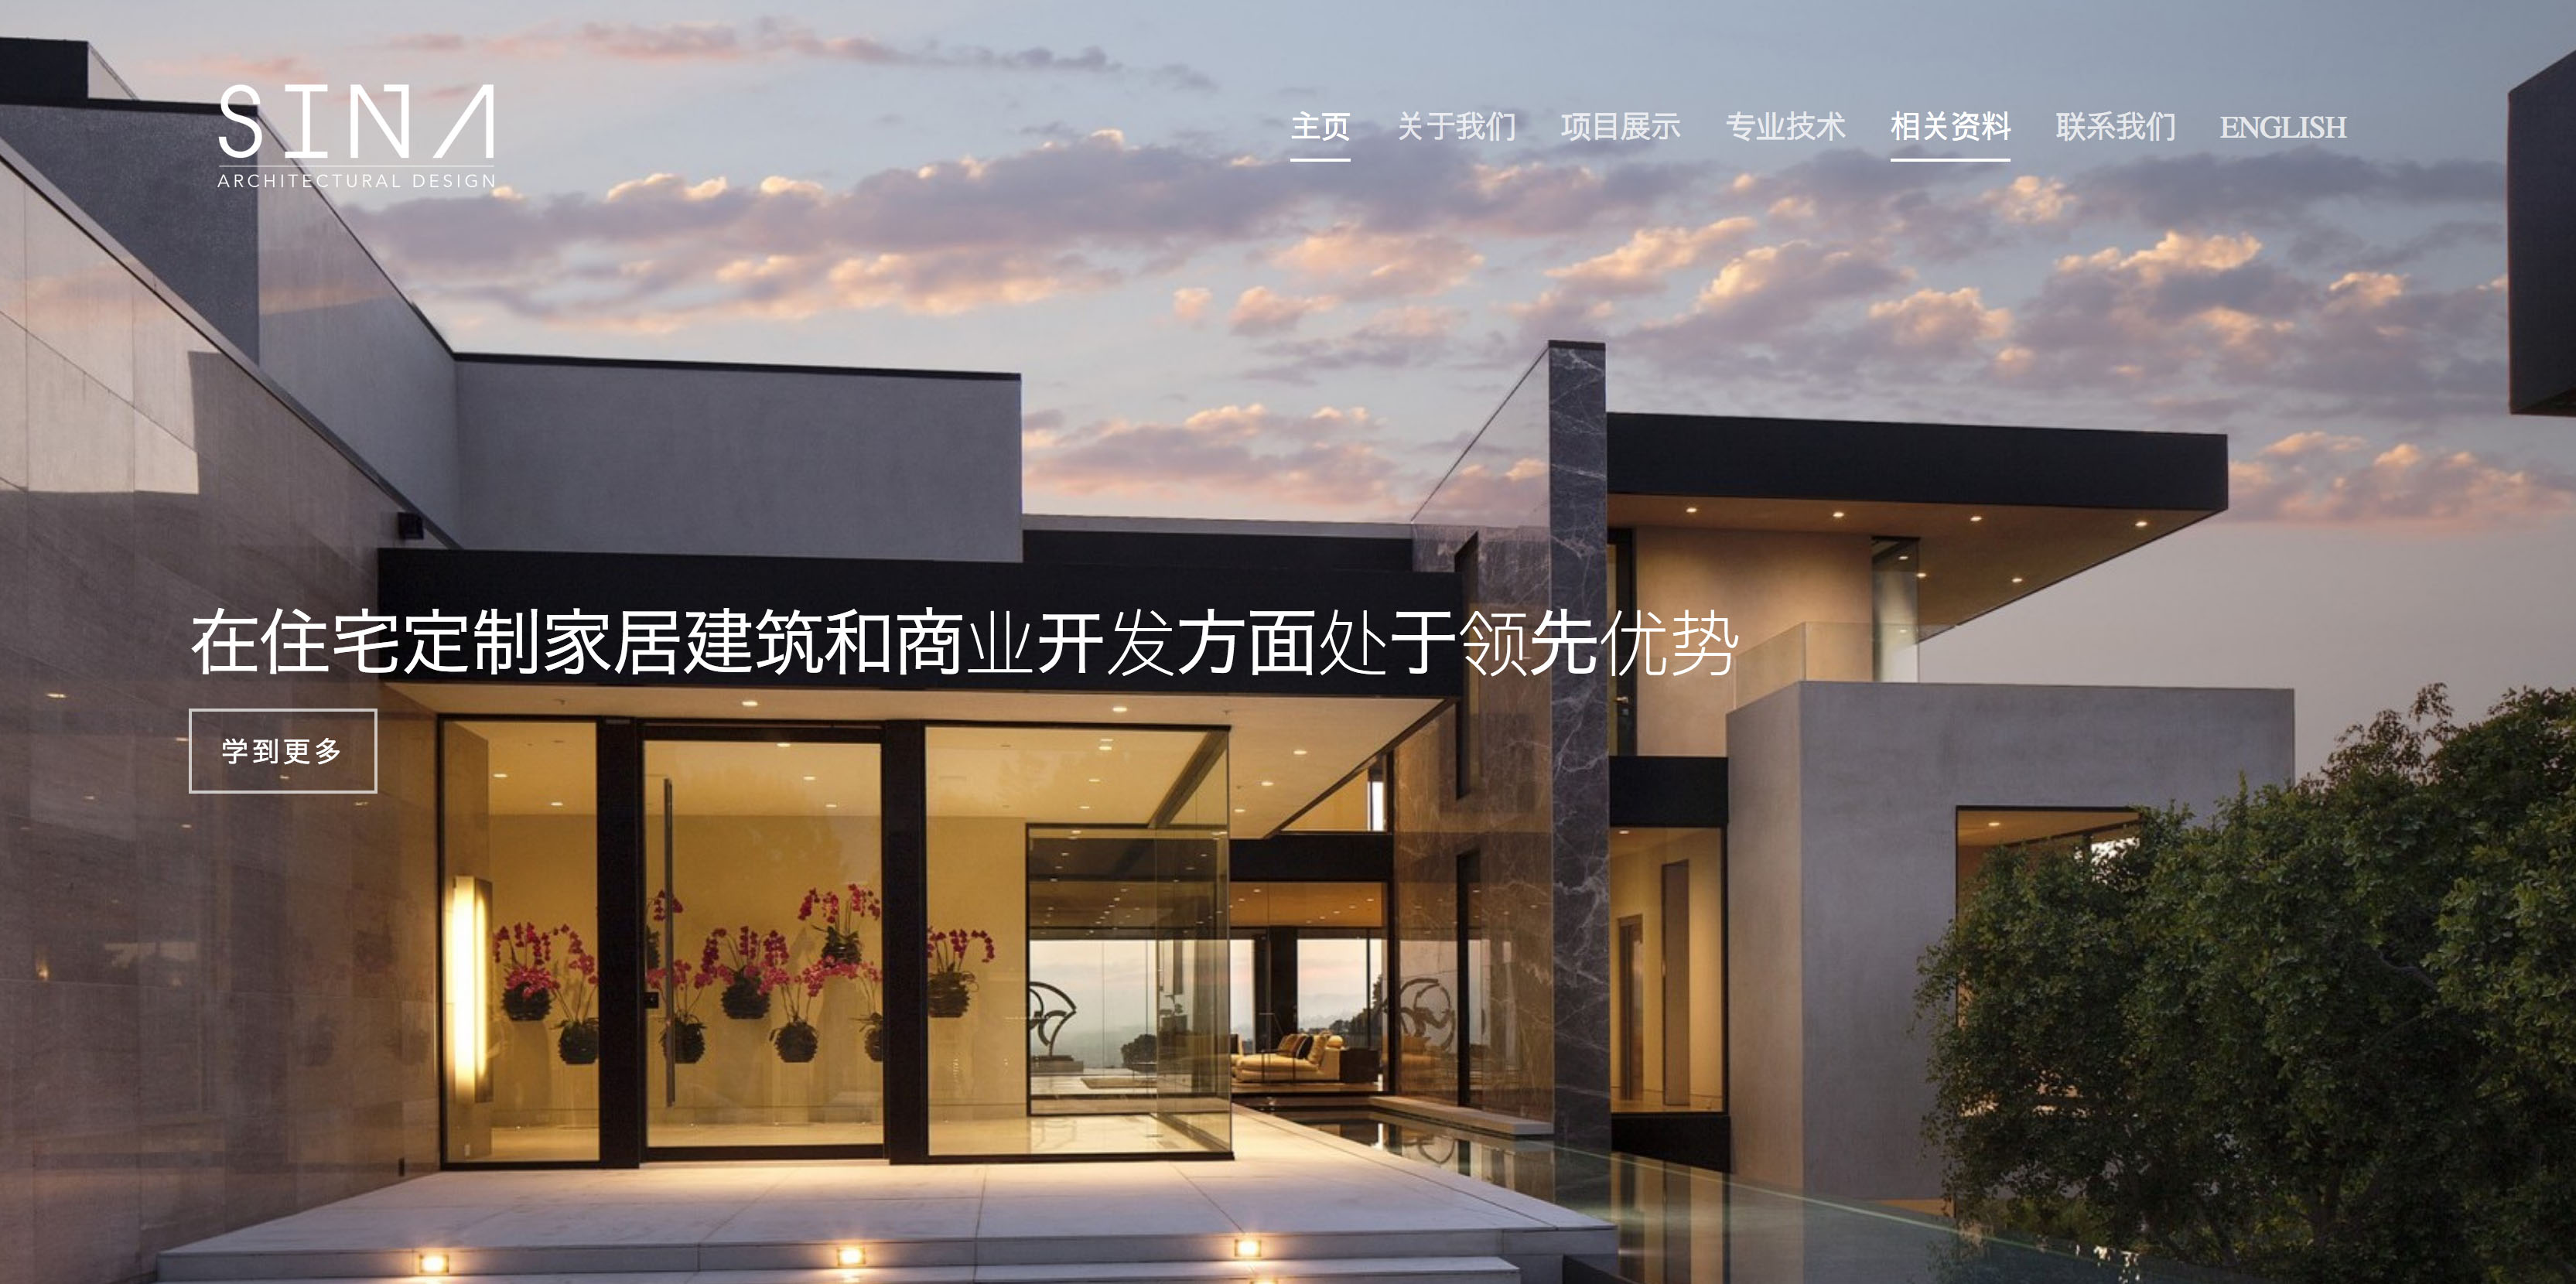 Chinese - Sina Architectural Design - Hilborn Digital Website Design